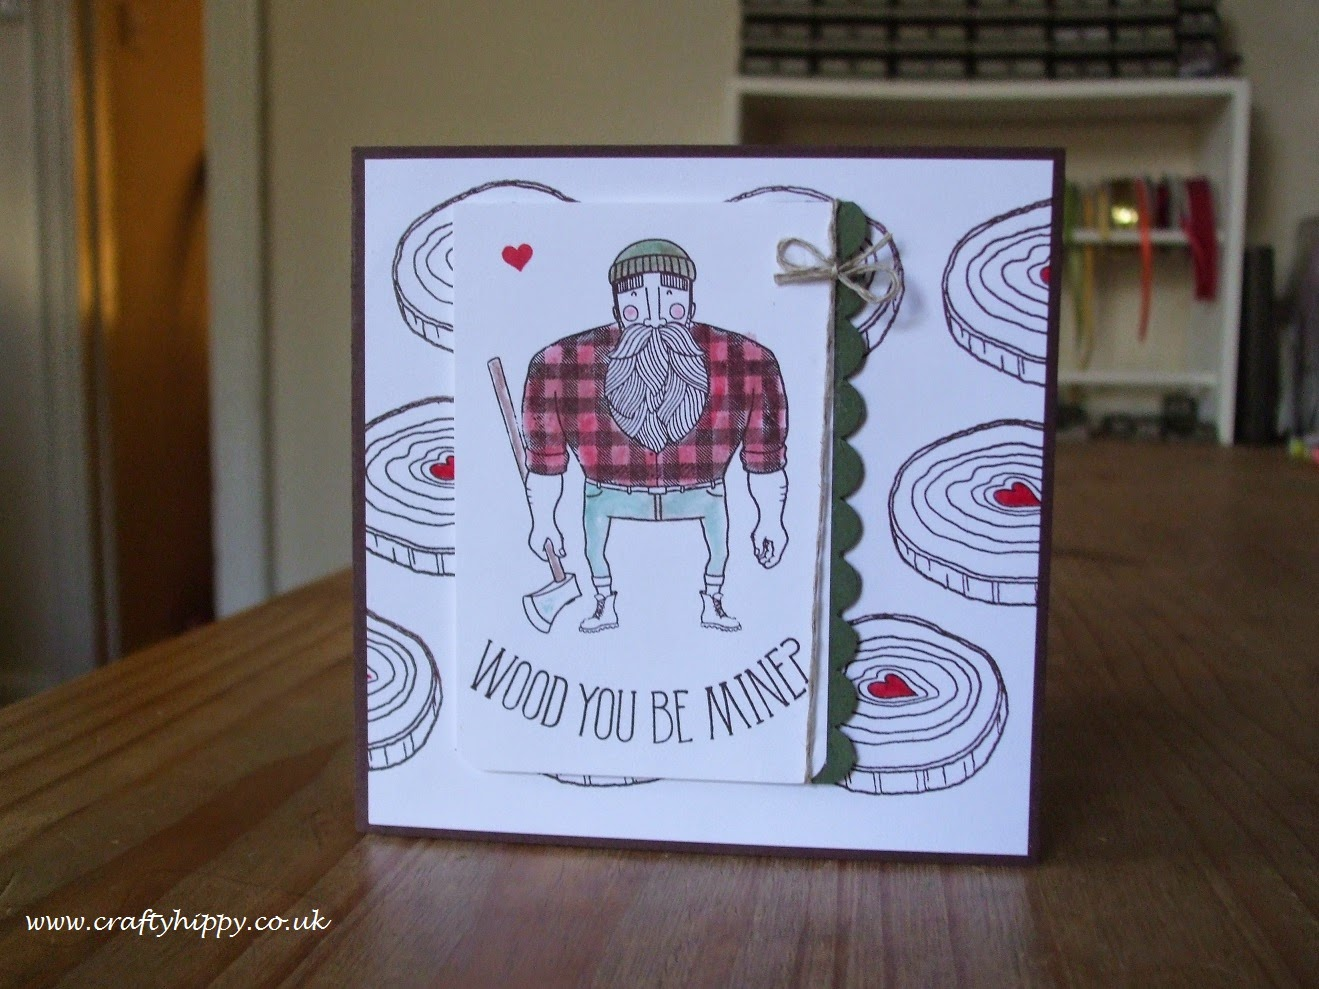 Stampin' Up! Wood You Be Mine